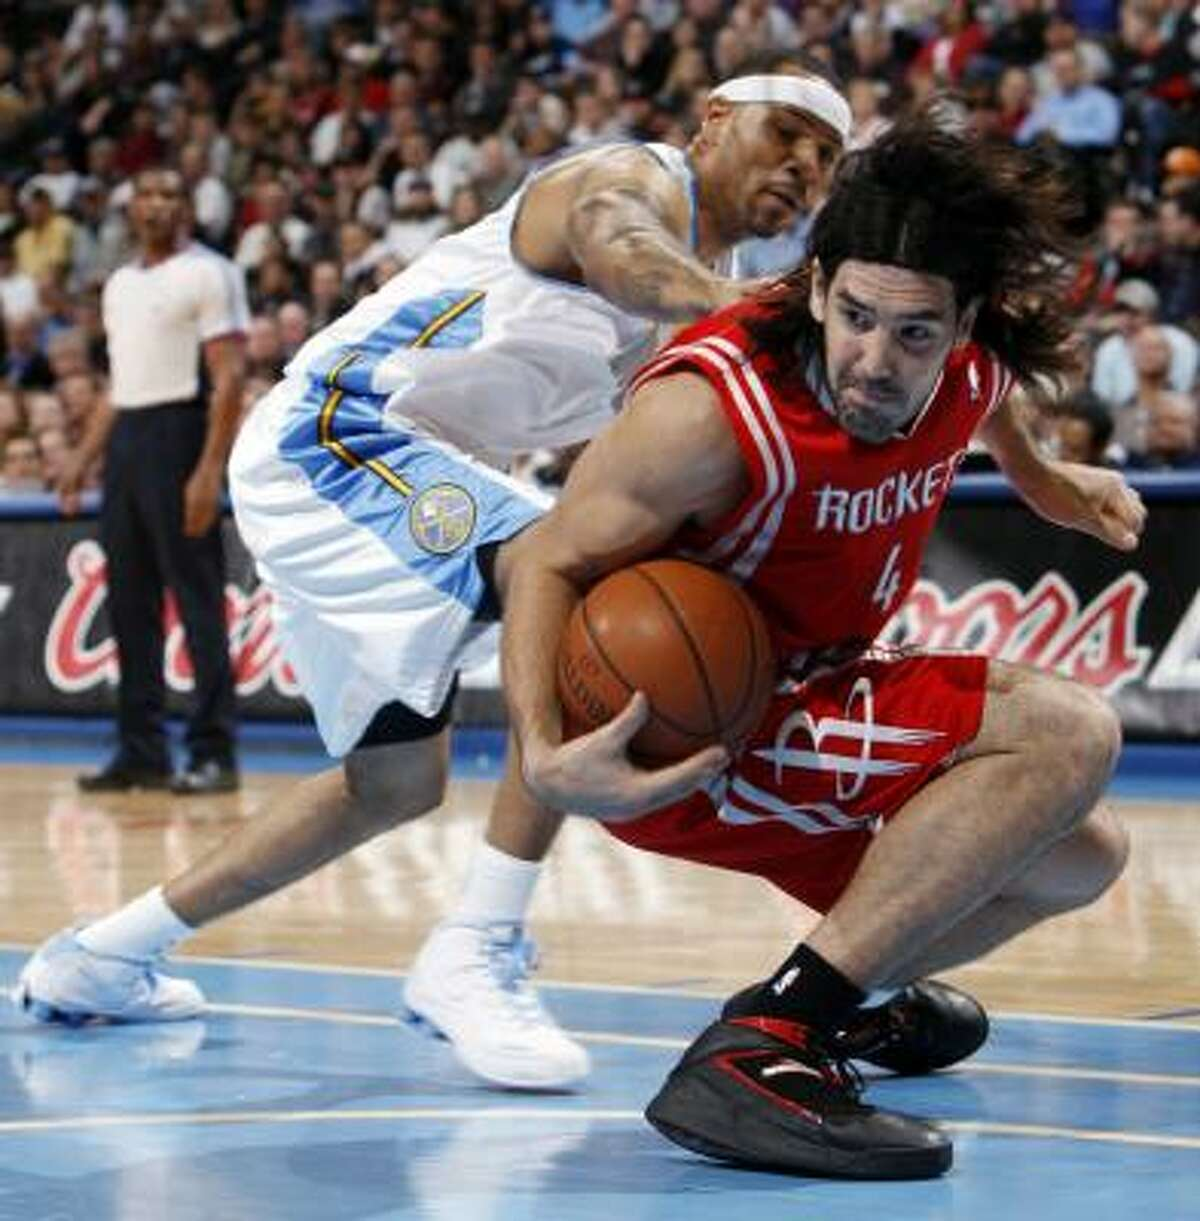 Rockets defeat Nuggets 97-95 . Luis Scola, front, picks up a loose ball ahead of Nuggets forward Kenyon Martin in the first quarter. The Rockets missed 15 free throws but managed to hold off Denver's fourth-quarter rally. Statistics | Record: 42-23